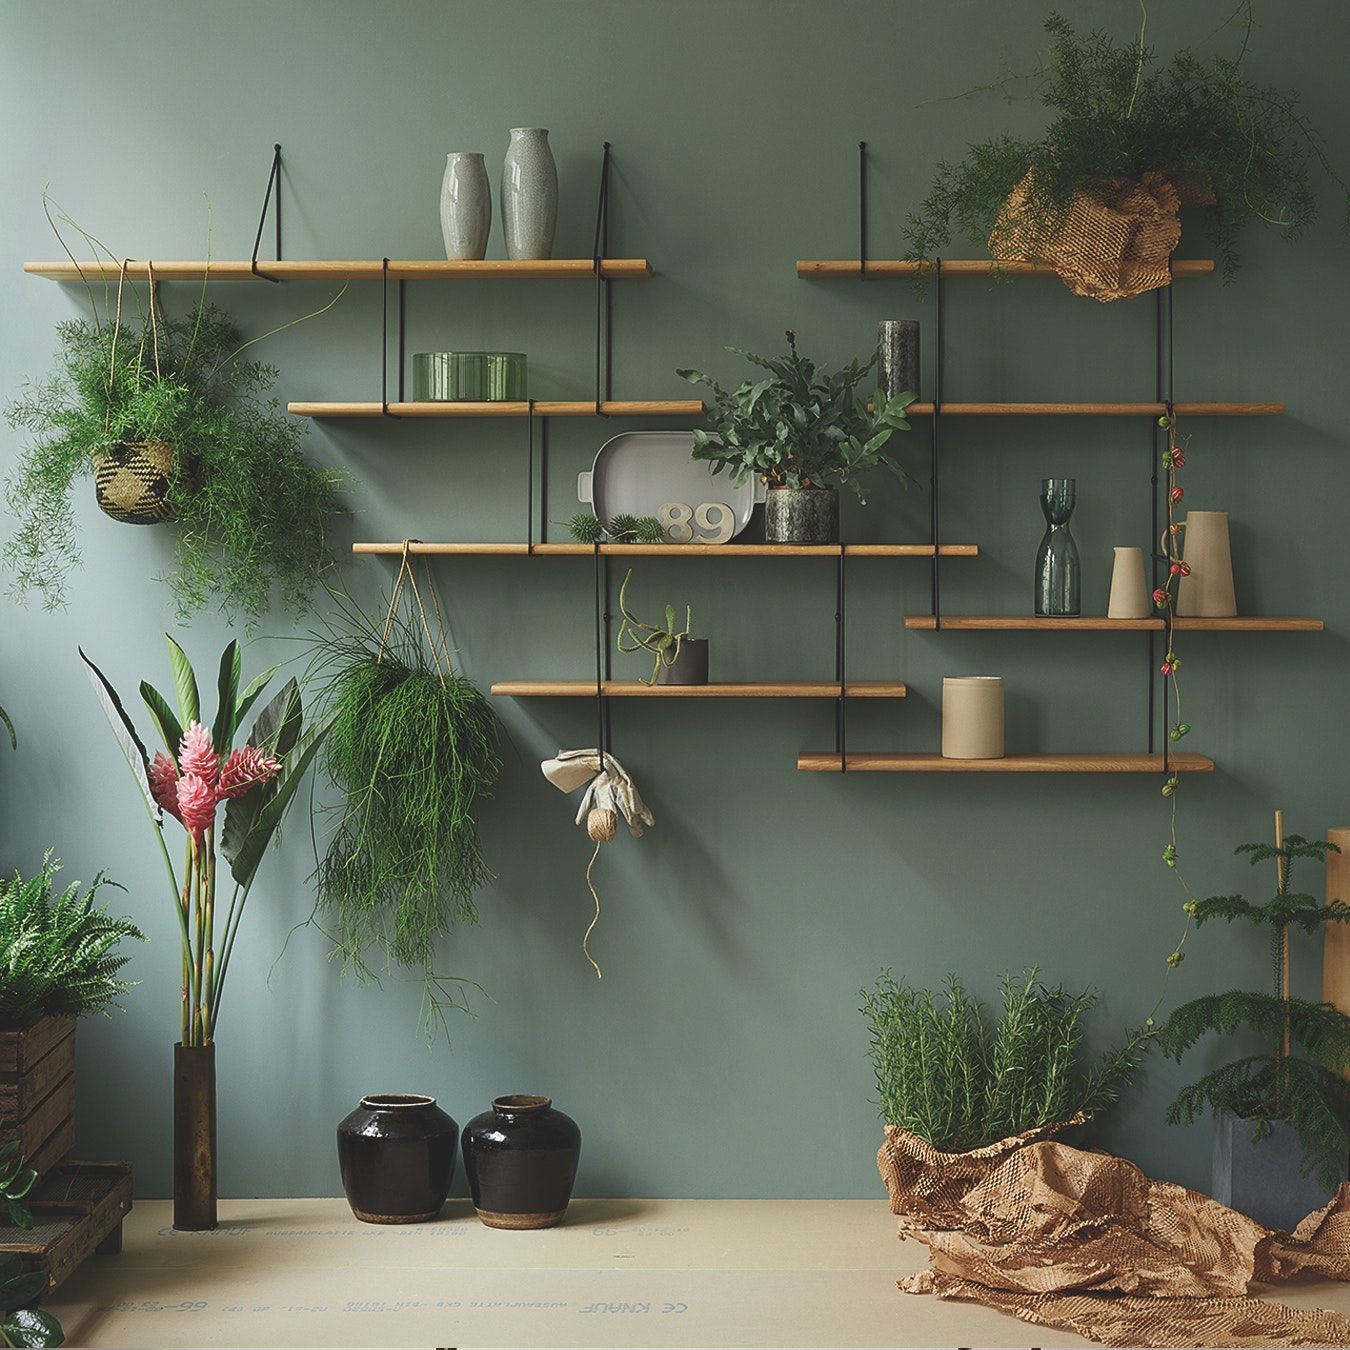 Link Shelf Setup 1 In Oak Black Wall Shelves Living Room Home Decor Interior Design Living Room